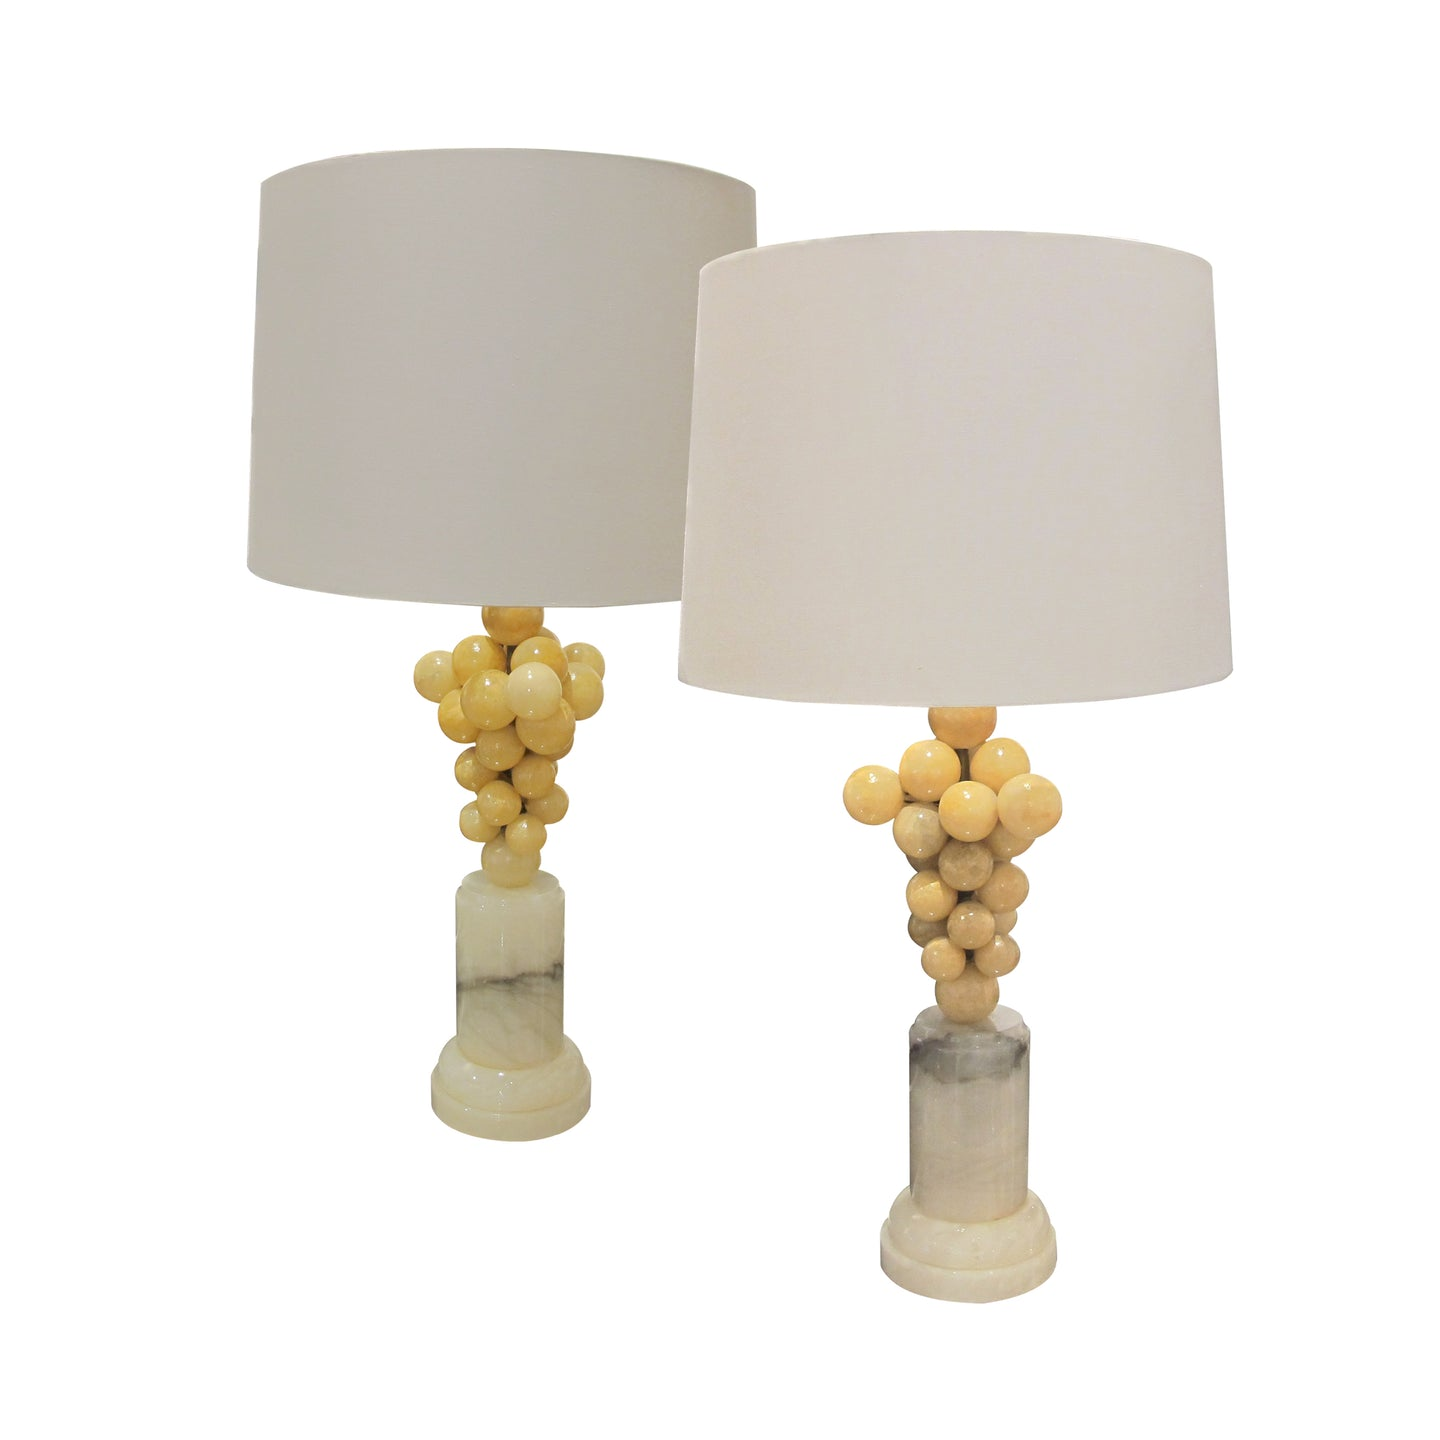 A pair of alabaster table lamps, 1970's